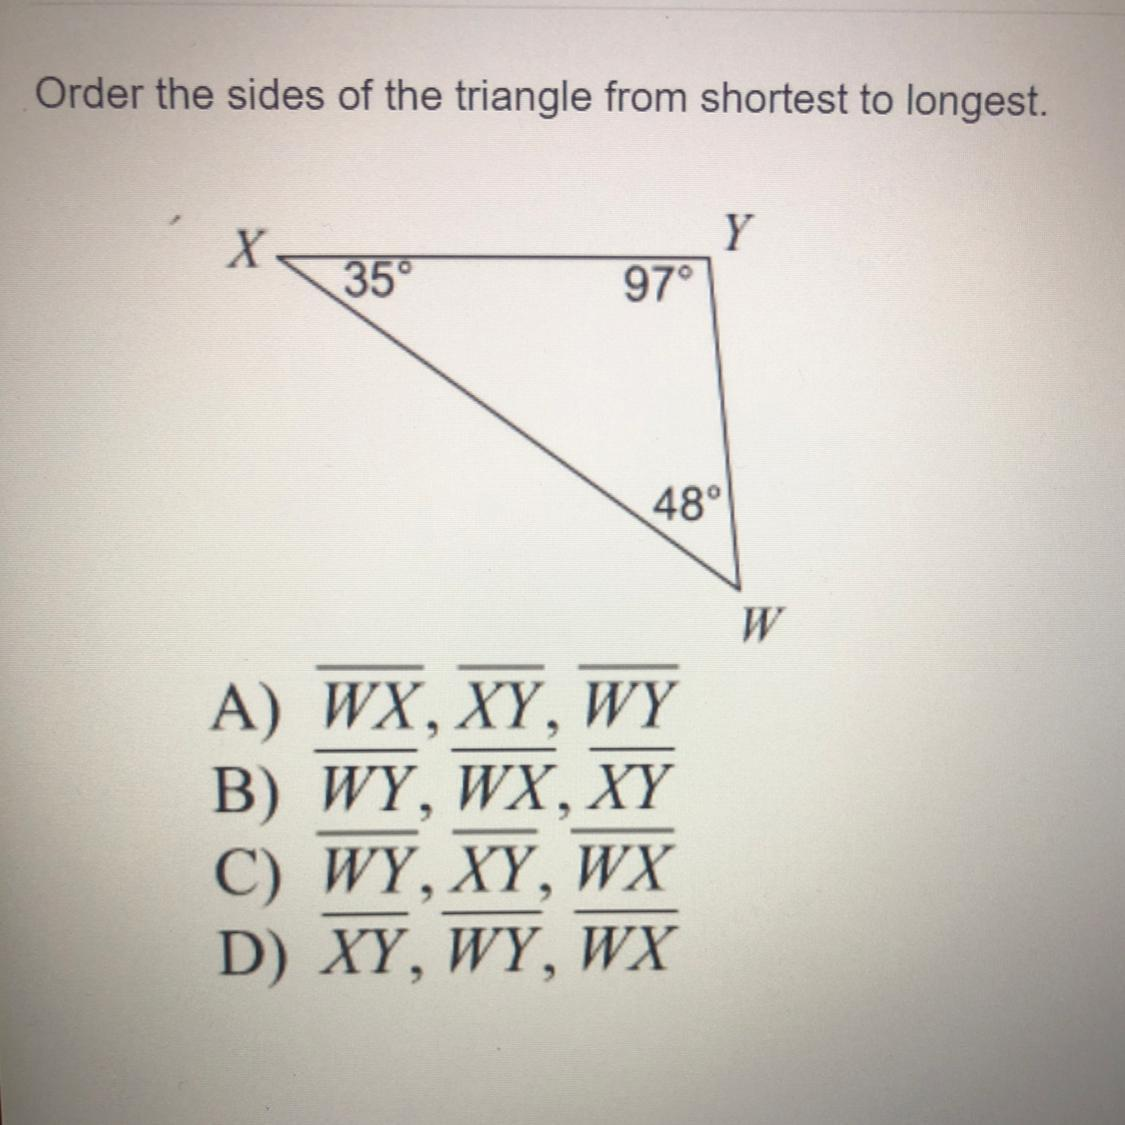 Order The Sides Of The Triangle From Shortest To Longest